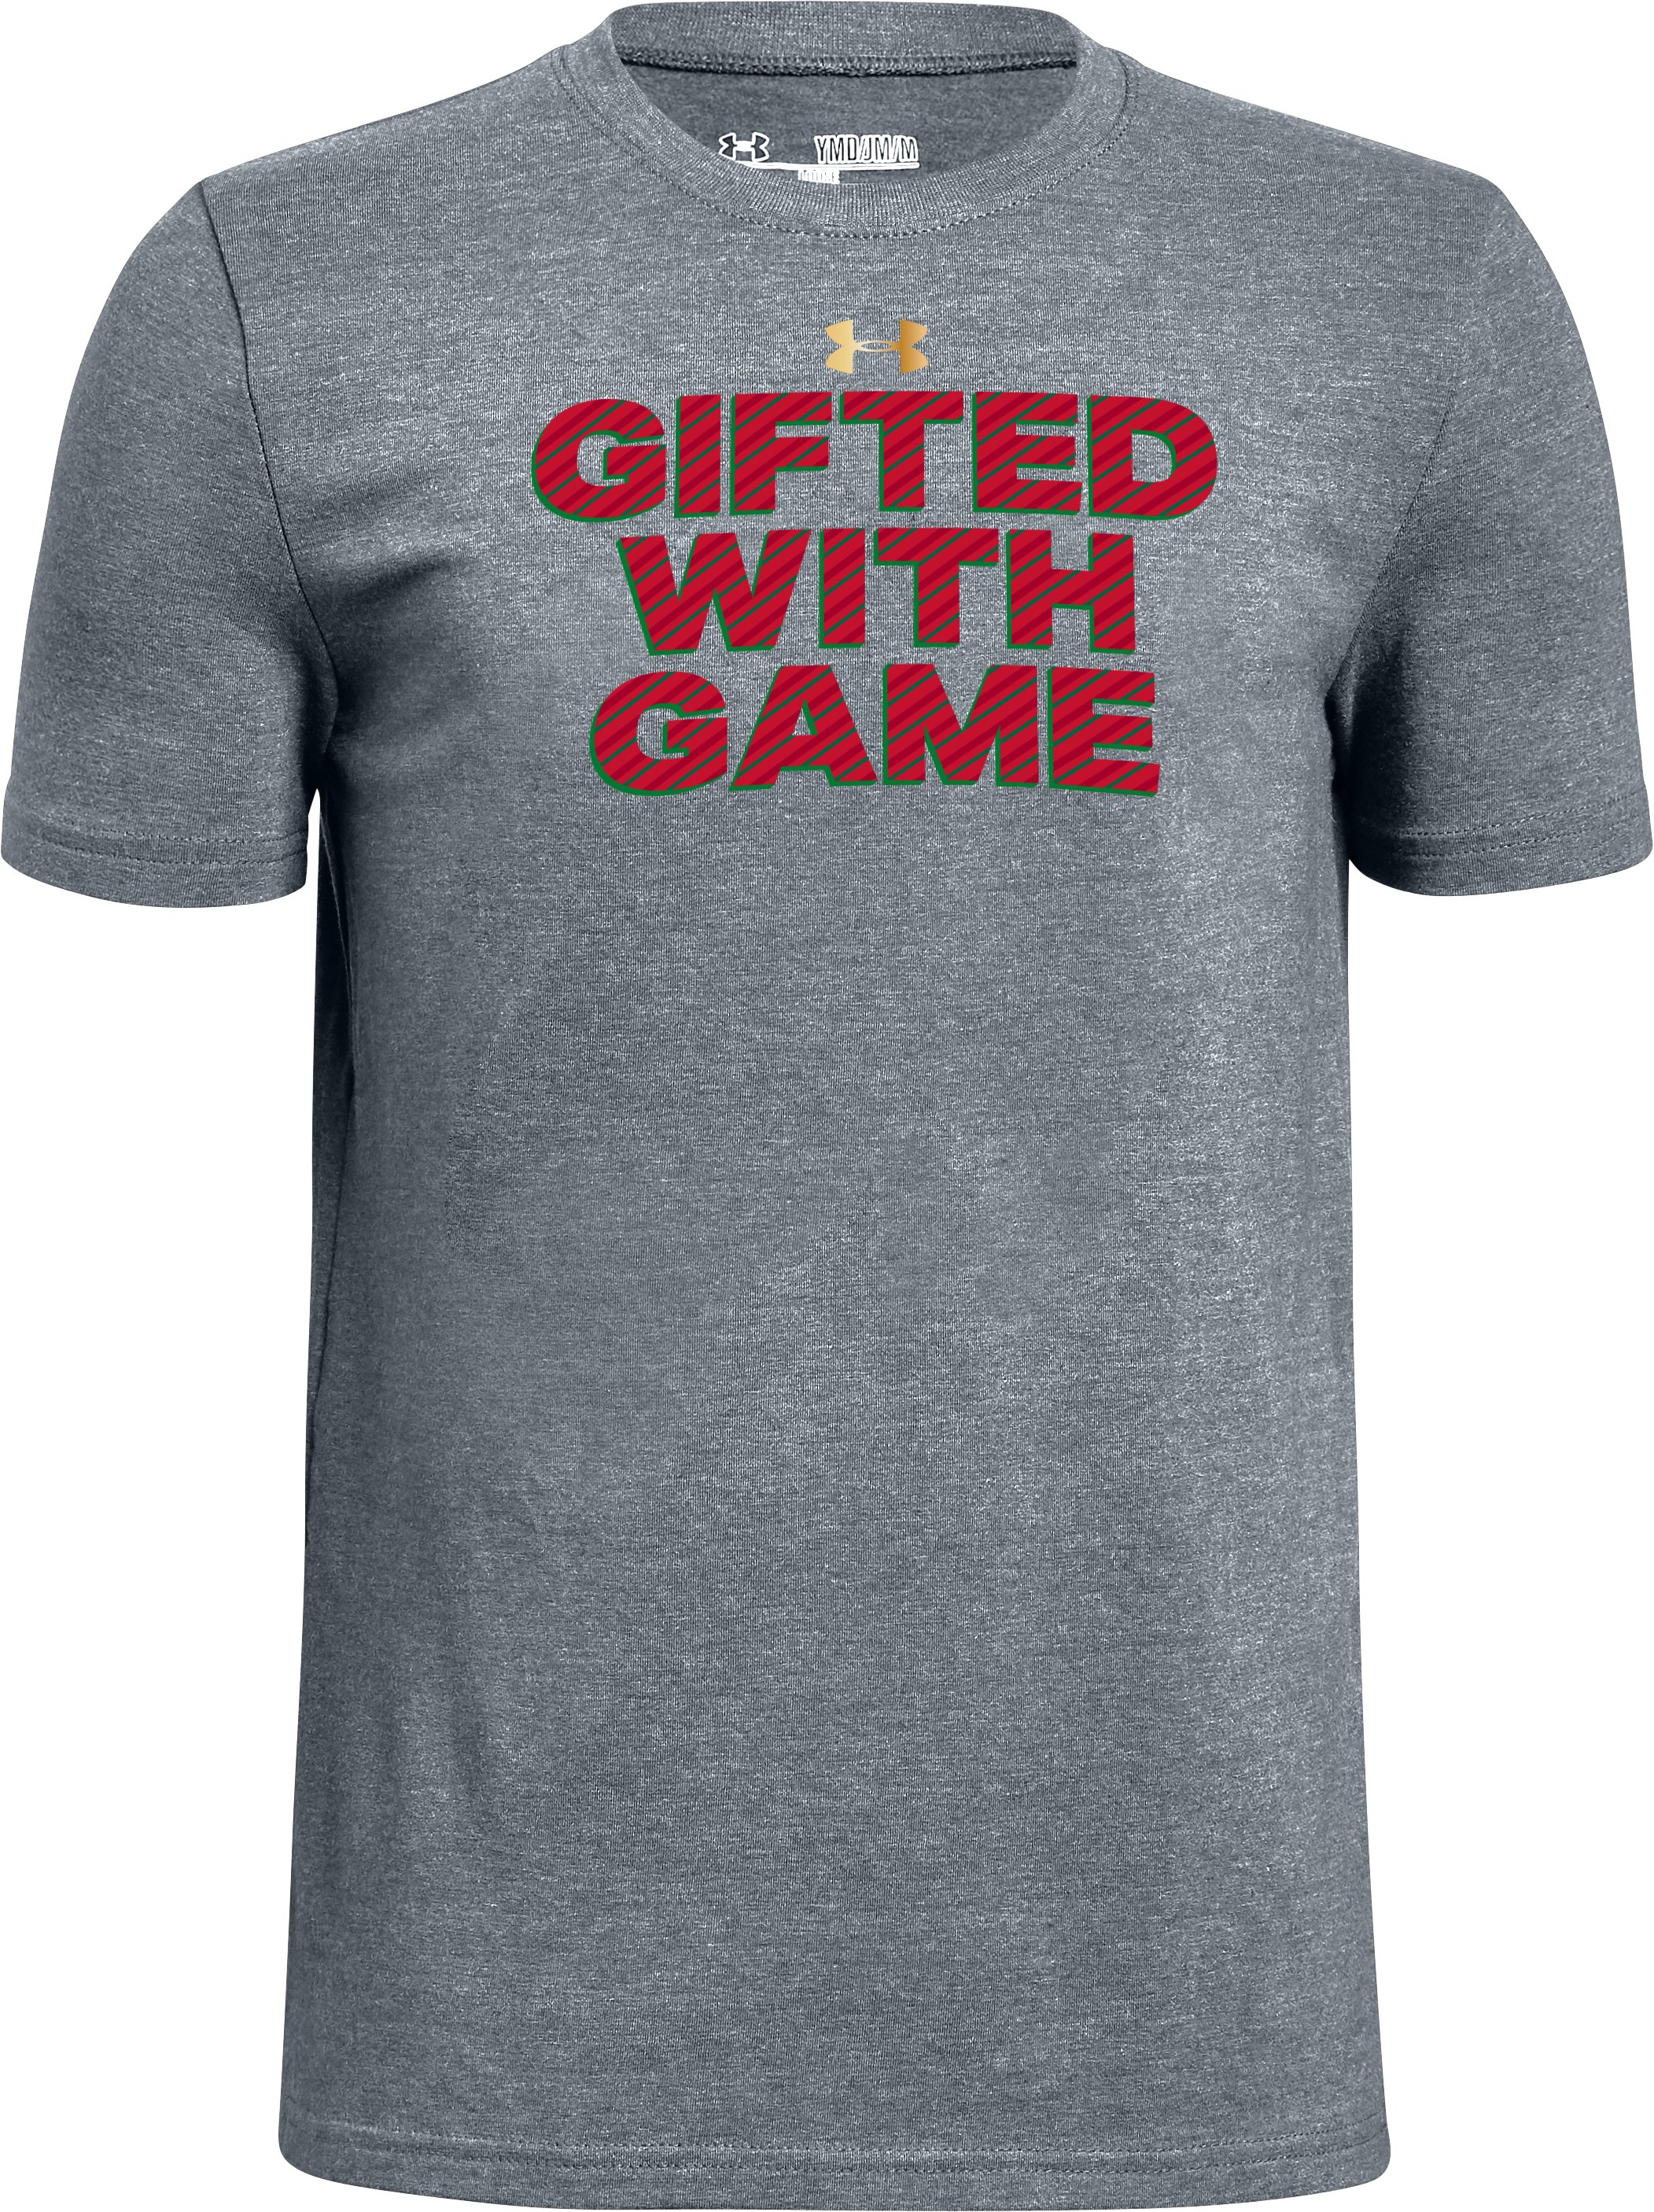 Boys' UA Gifted With Game Graphic T-Shirt, STEEL LIGHT HEATHER, undefined